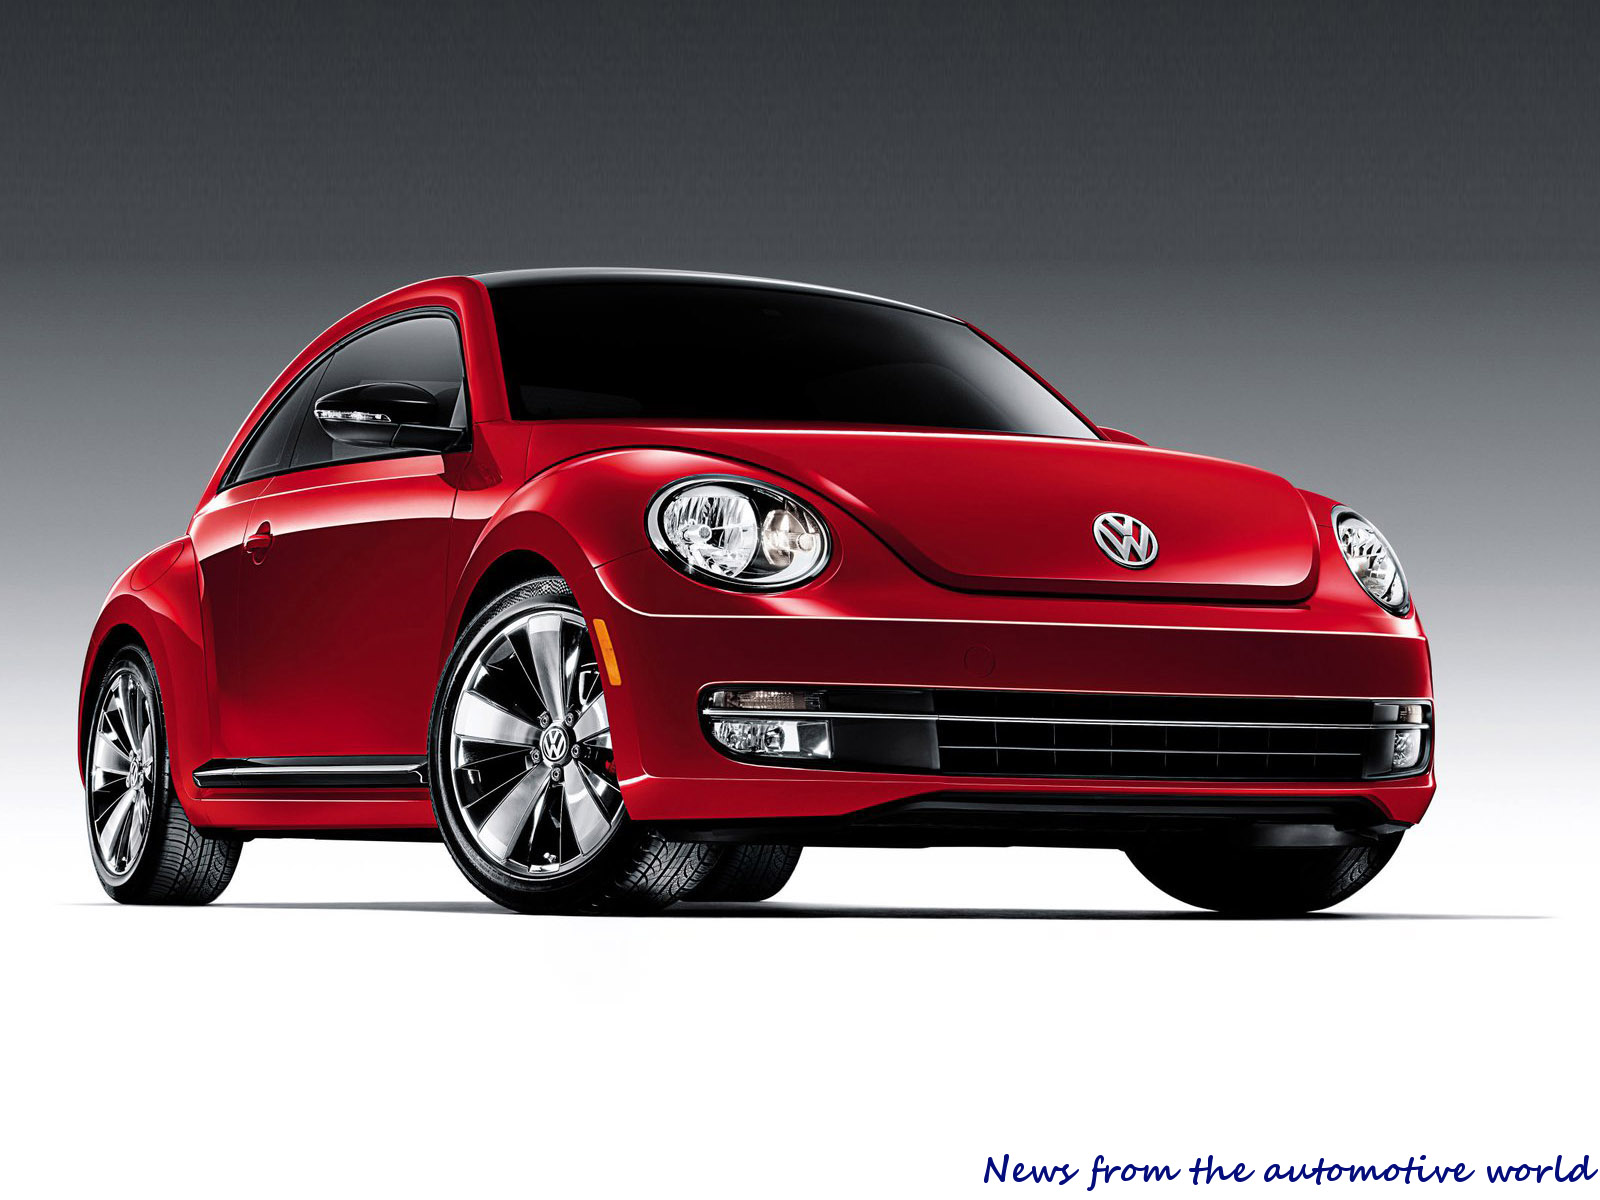 2011 volkswagen beetle turbo news from the automotive world. Black Bedroom Furniture Sets. Home Design Ideas